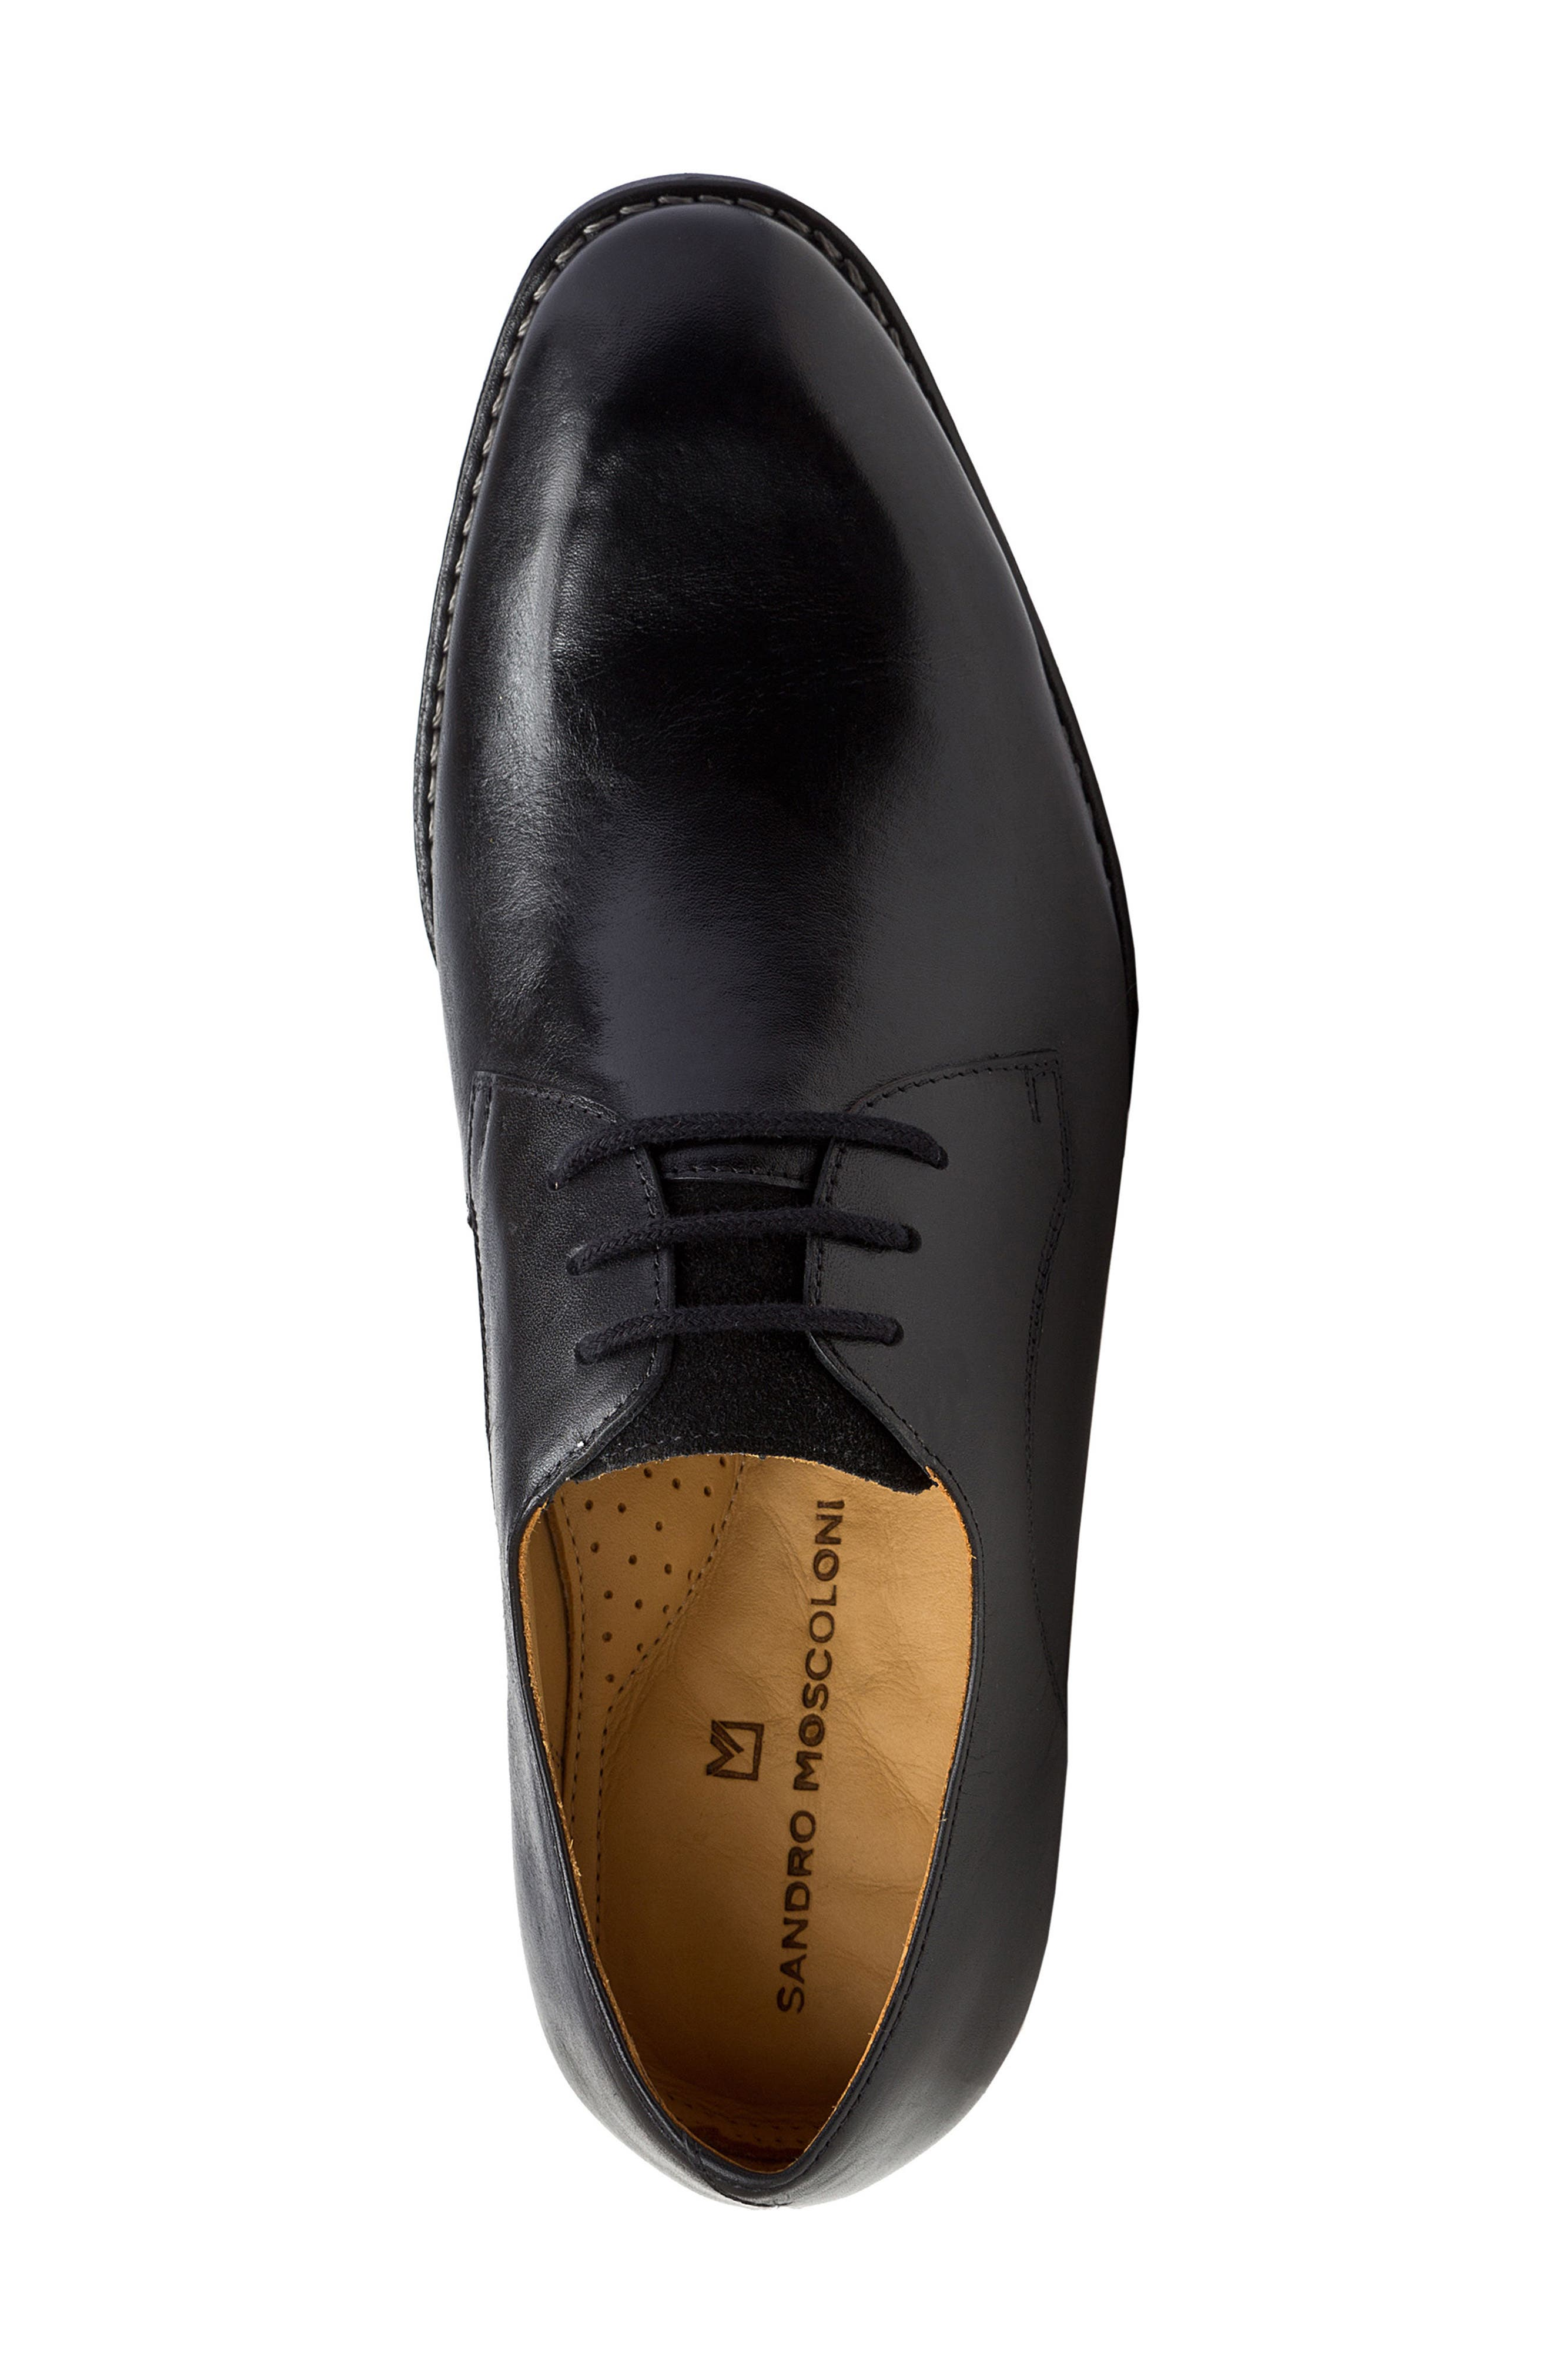 SANDRO MOSCOLONI, Garret Plain Toe Derby, Alternate thumbnail 5, color, BLACK LEATHER